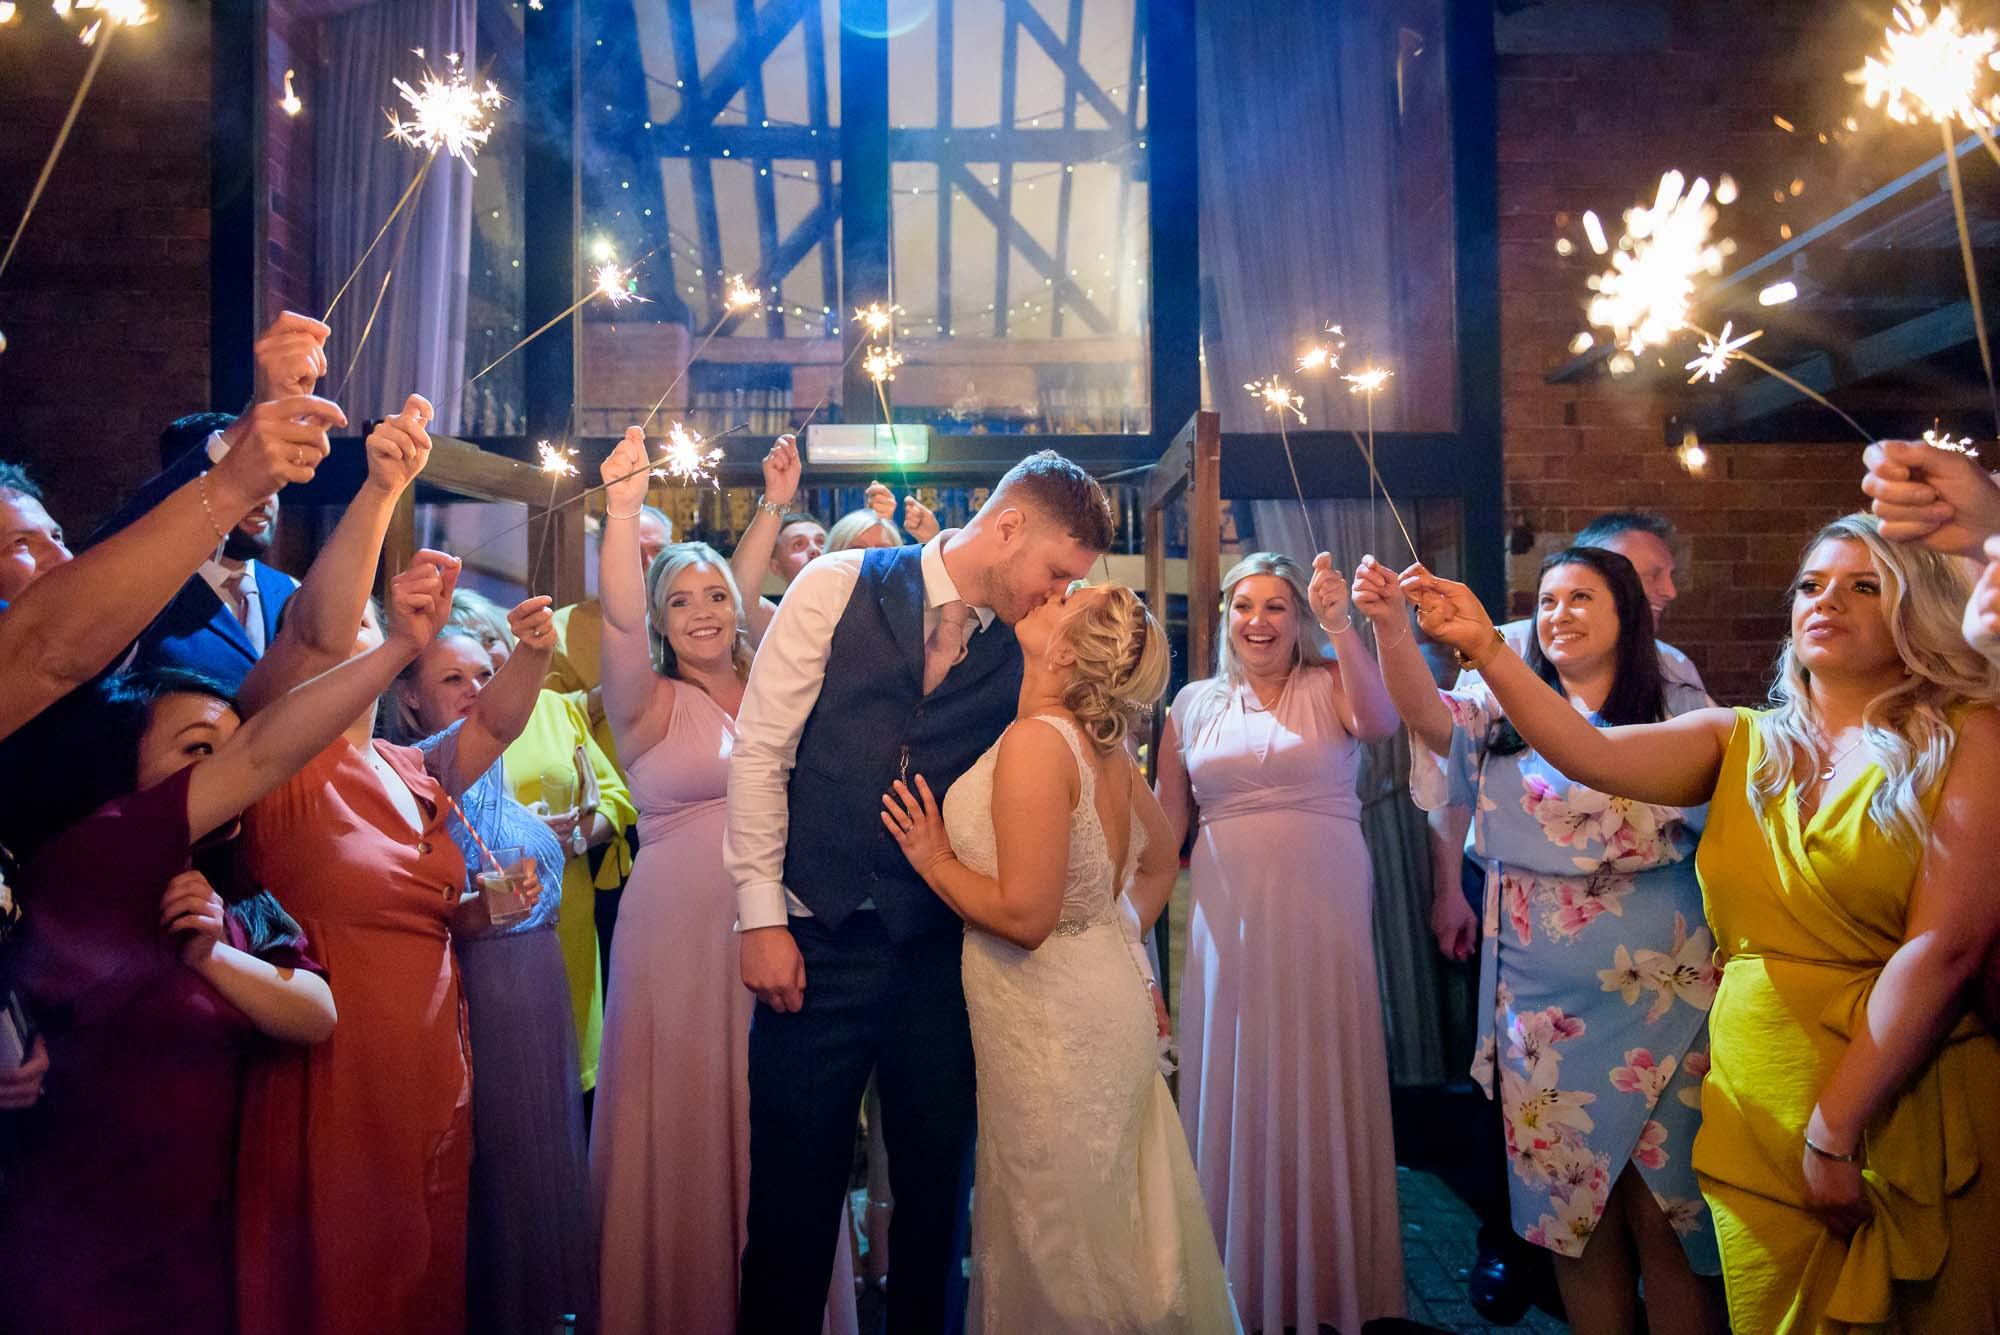 Warwickshire Wedding Photography Brimingham Midlands Coventry Stratford UK Wedding Photographer Cotswolds UK